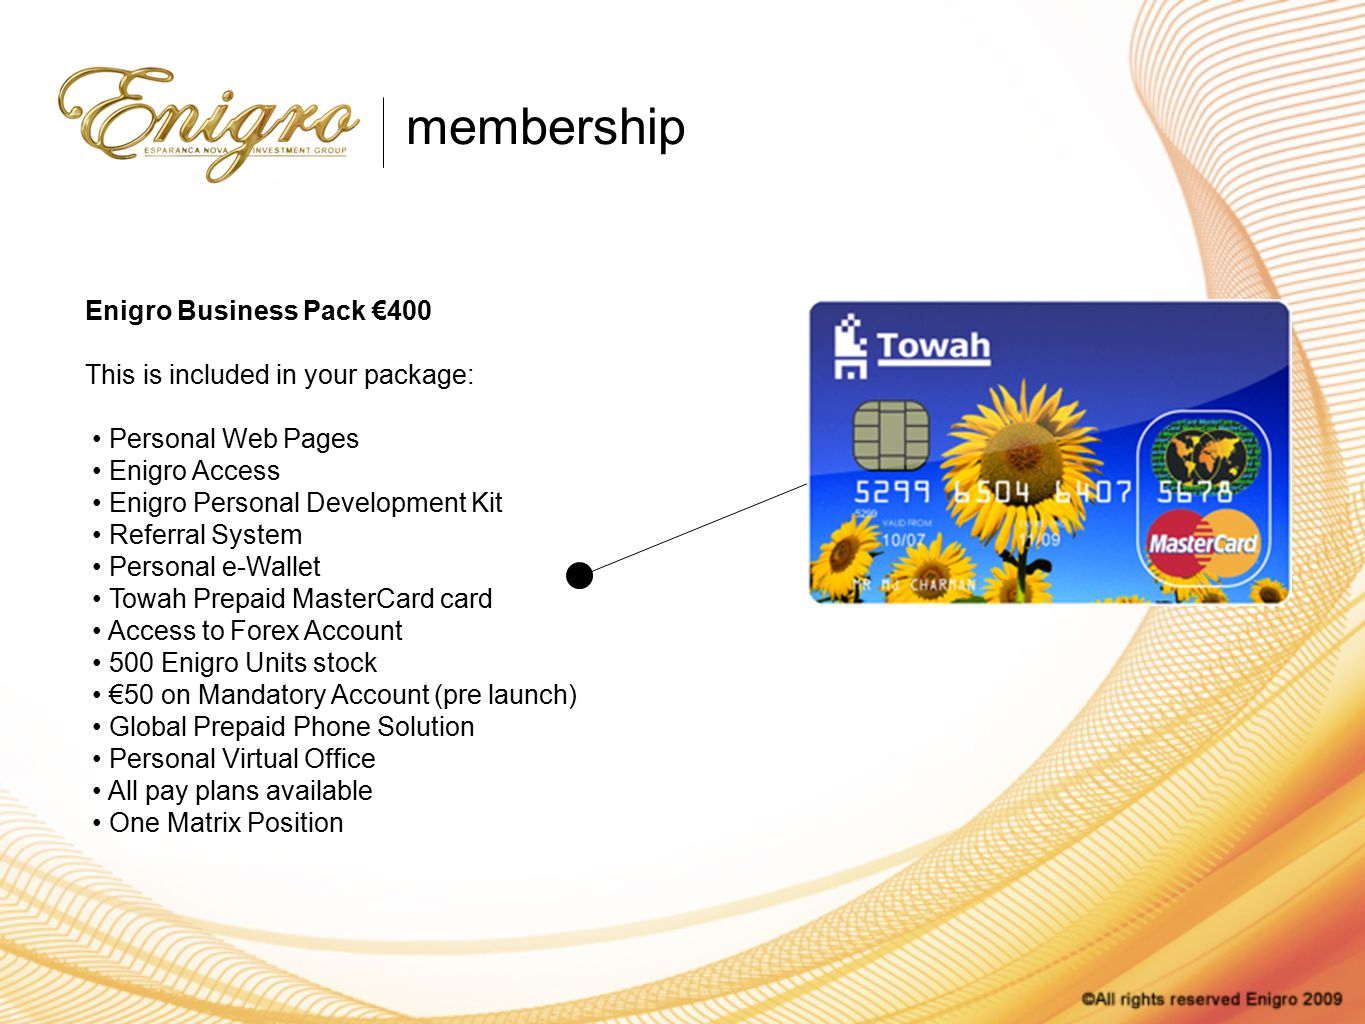 Enigro Business Pack €400 This is included in your package: Personal Web Pages Enigro Access Enigro Personal Development Kit Referral System Personal e-Wallet Towah Prepaid MasterCard card Access to Forex Account 500 Enigro Units stock €50 on Mandatory Account (pre launch) Global Prepaid Phone Solution Personal Virtual Office All pay plans available One Matrix Position membership